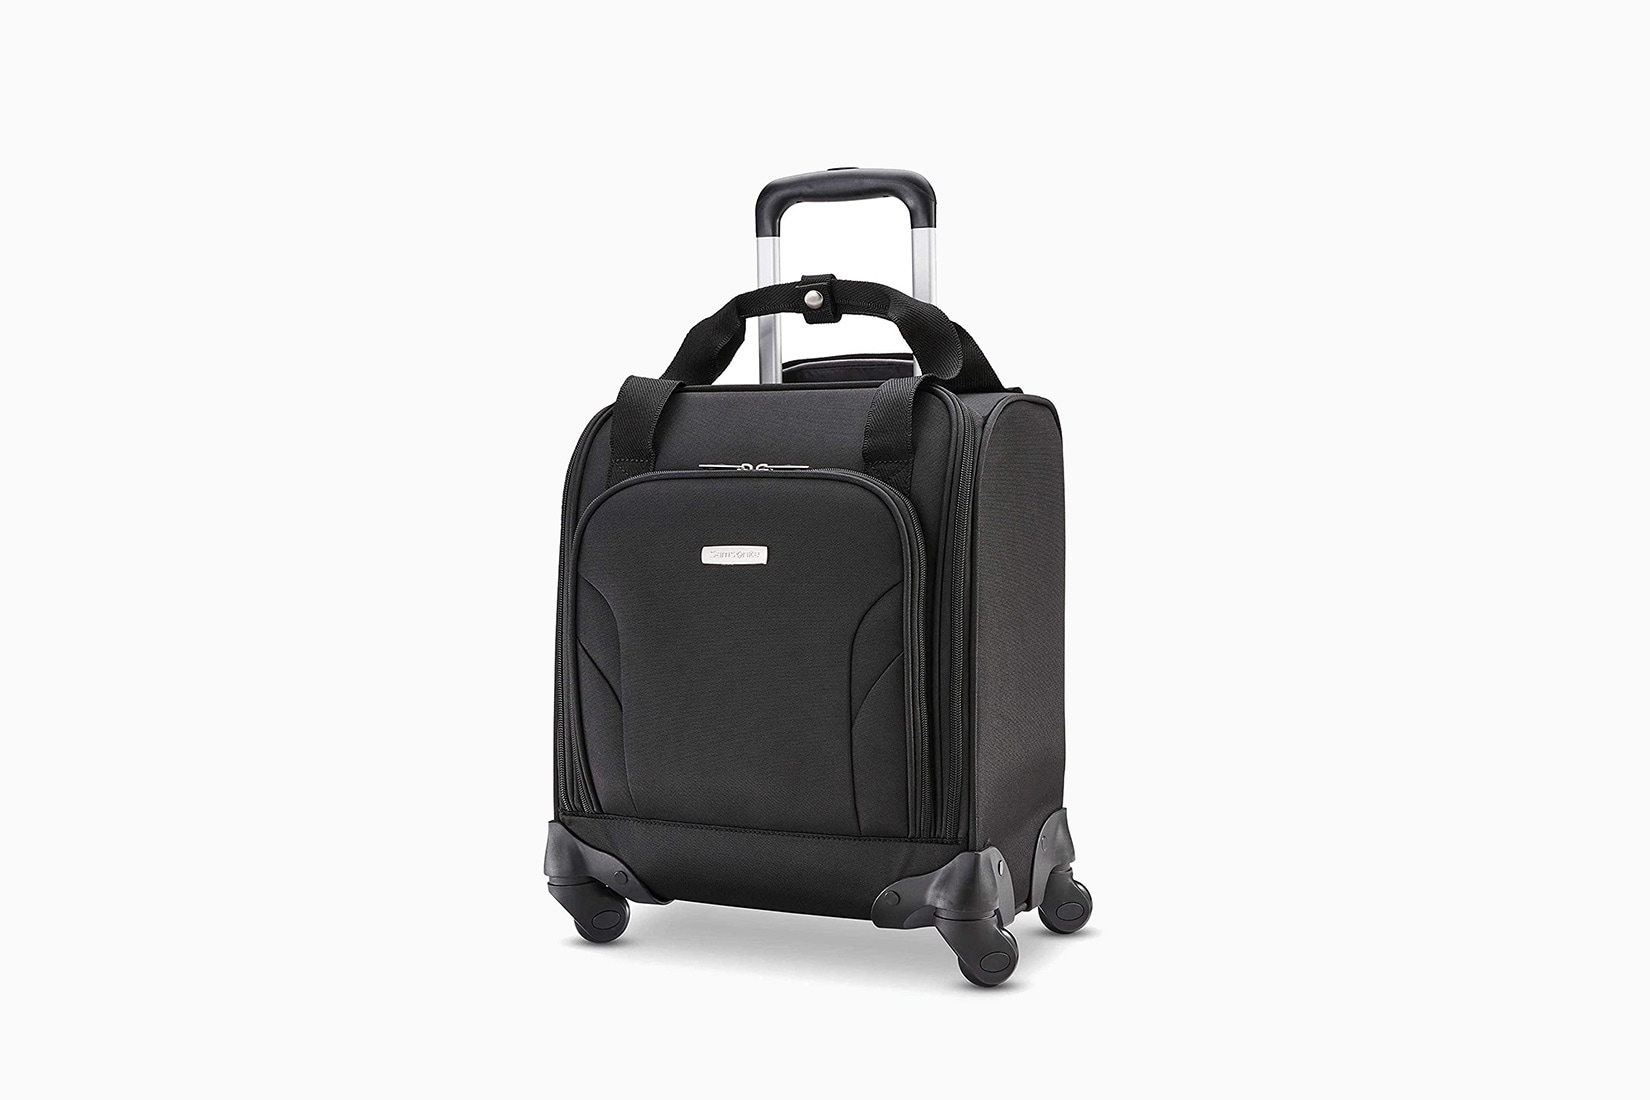 best carry-on luggage travel business trip samsonite - Luxe Digital